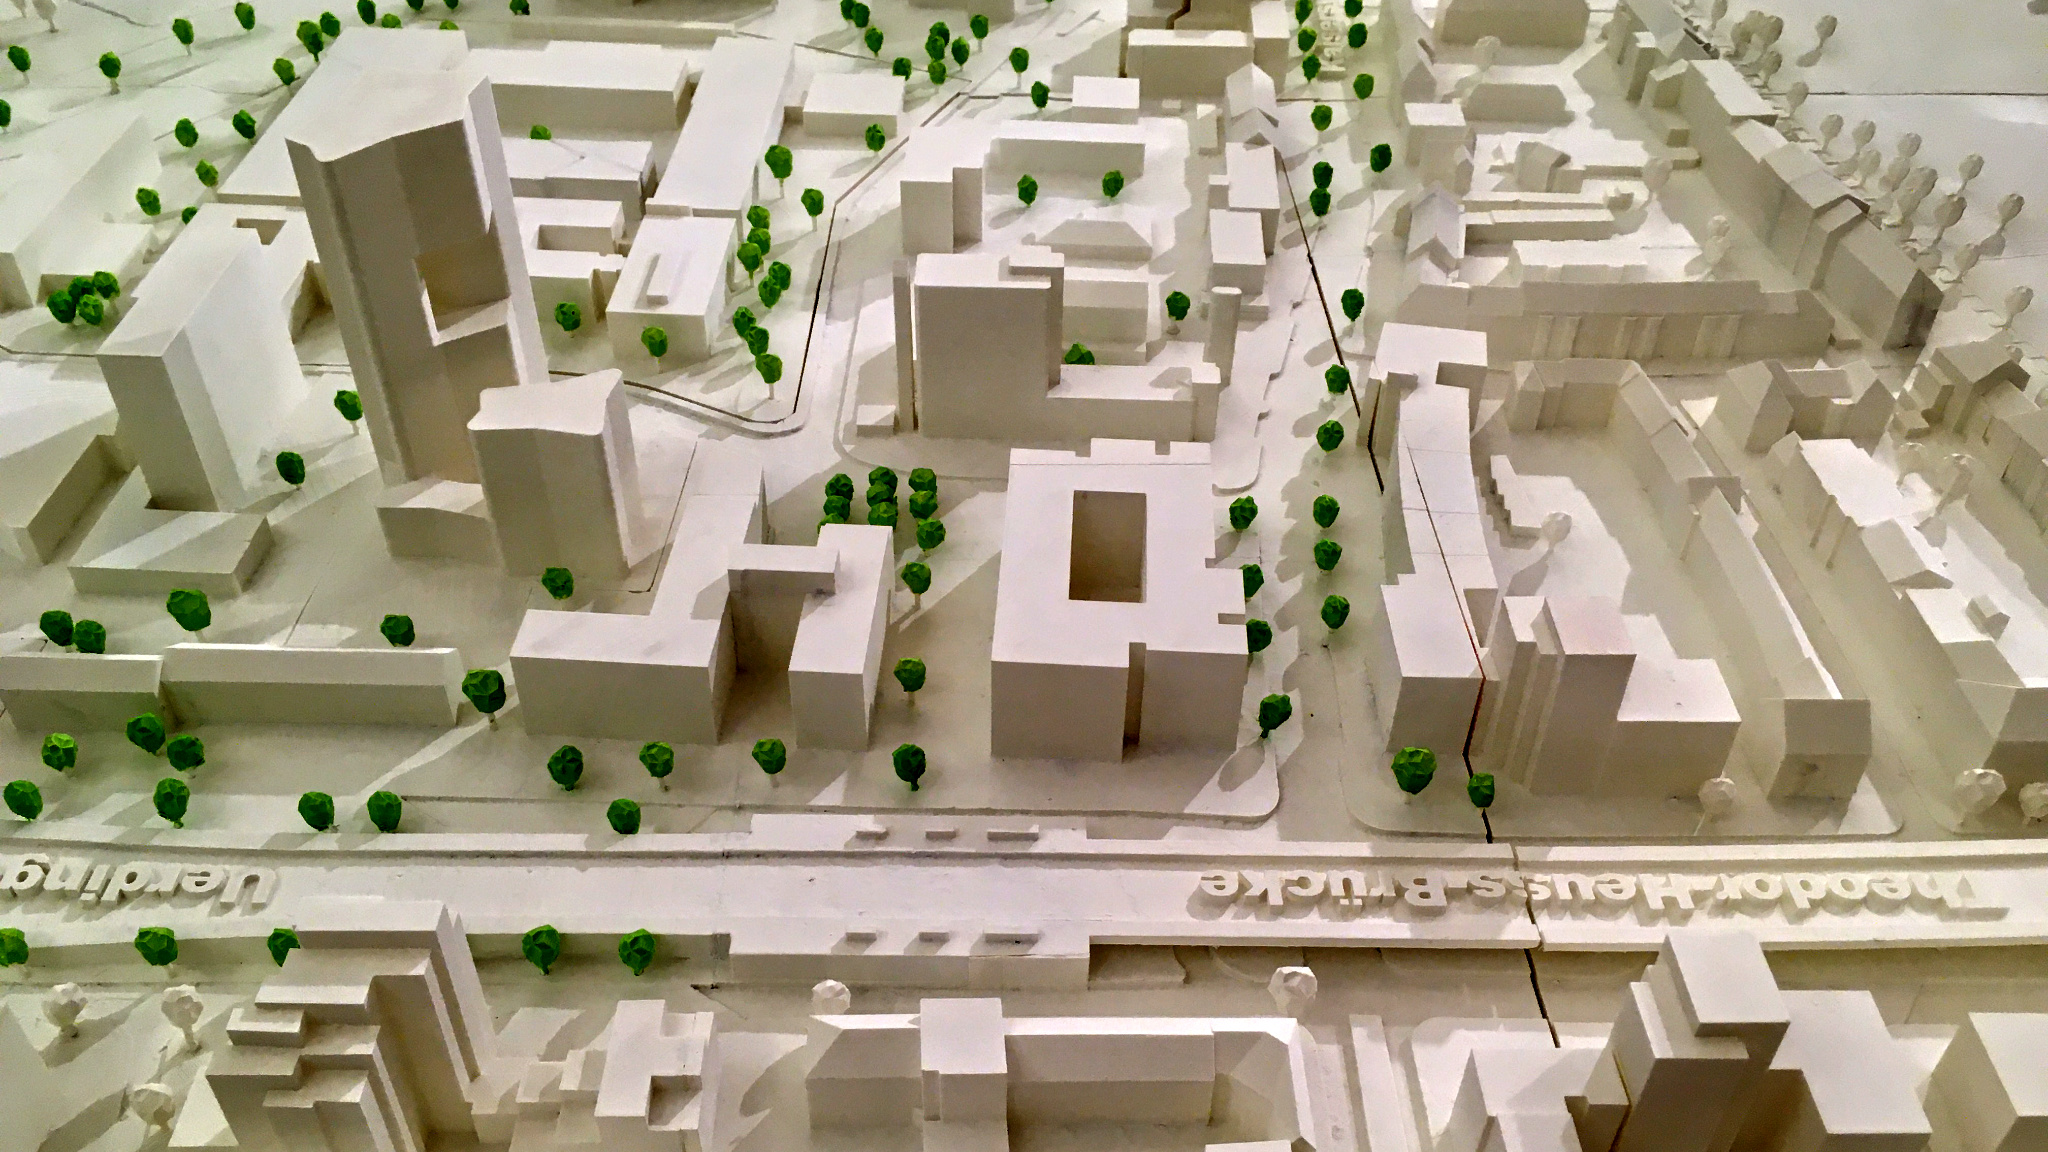 Public consultation for area Kennedydamm in 		scale 1:500